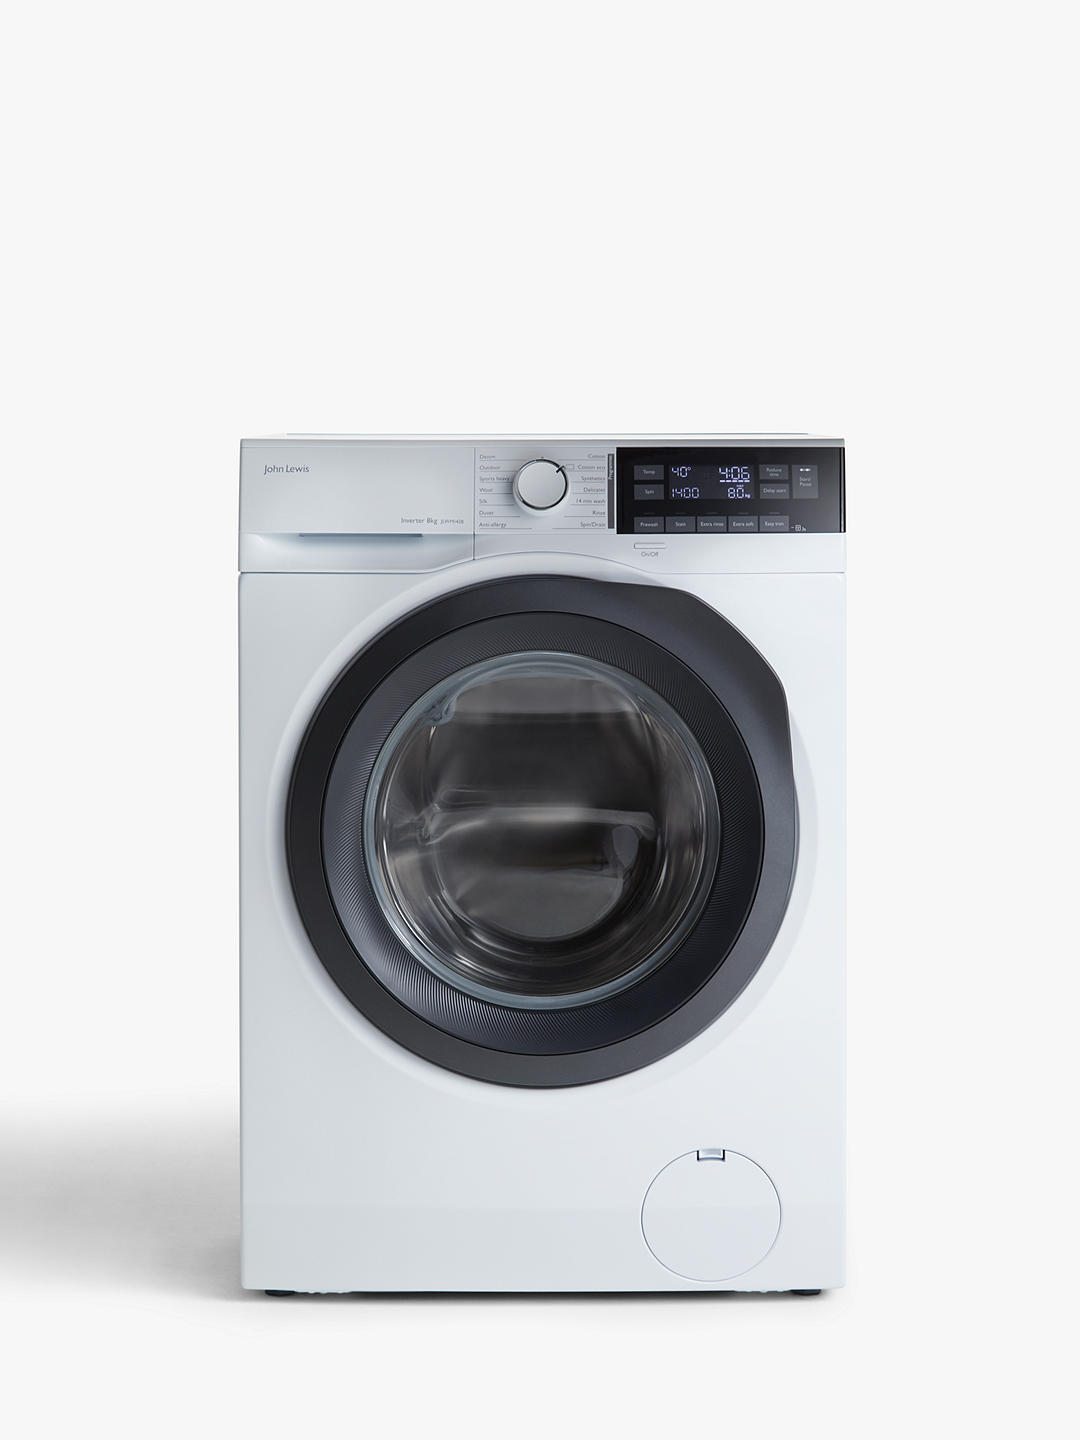 Buy John Lewis & Partners JLWM1428 Freestanding Washing Machine, 8kg Load, 1400rpm Spin White Online at johnlewis.com